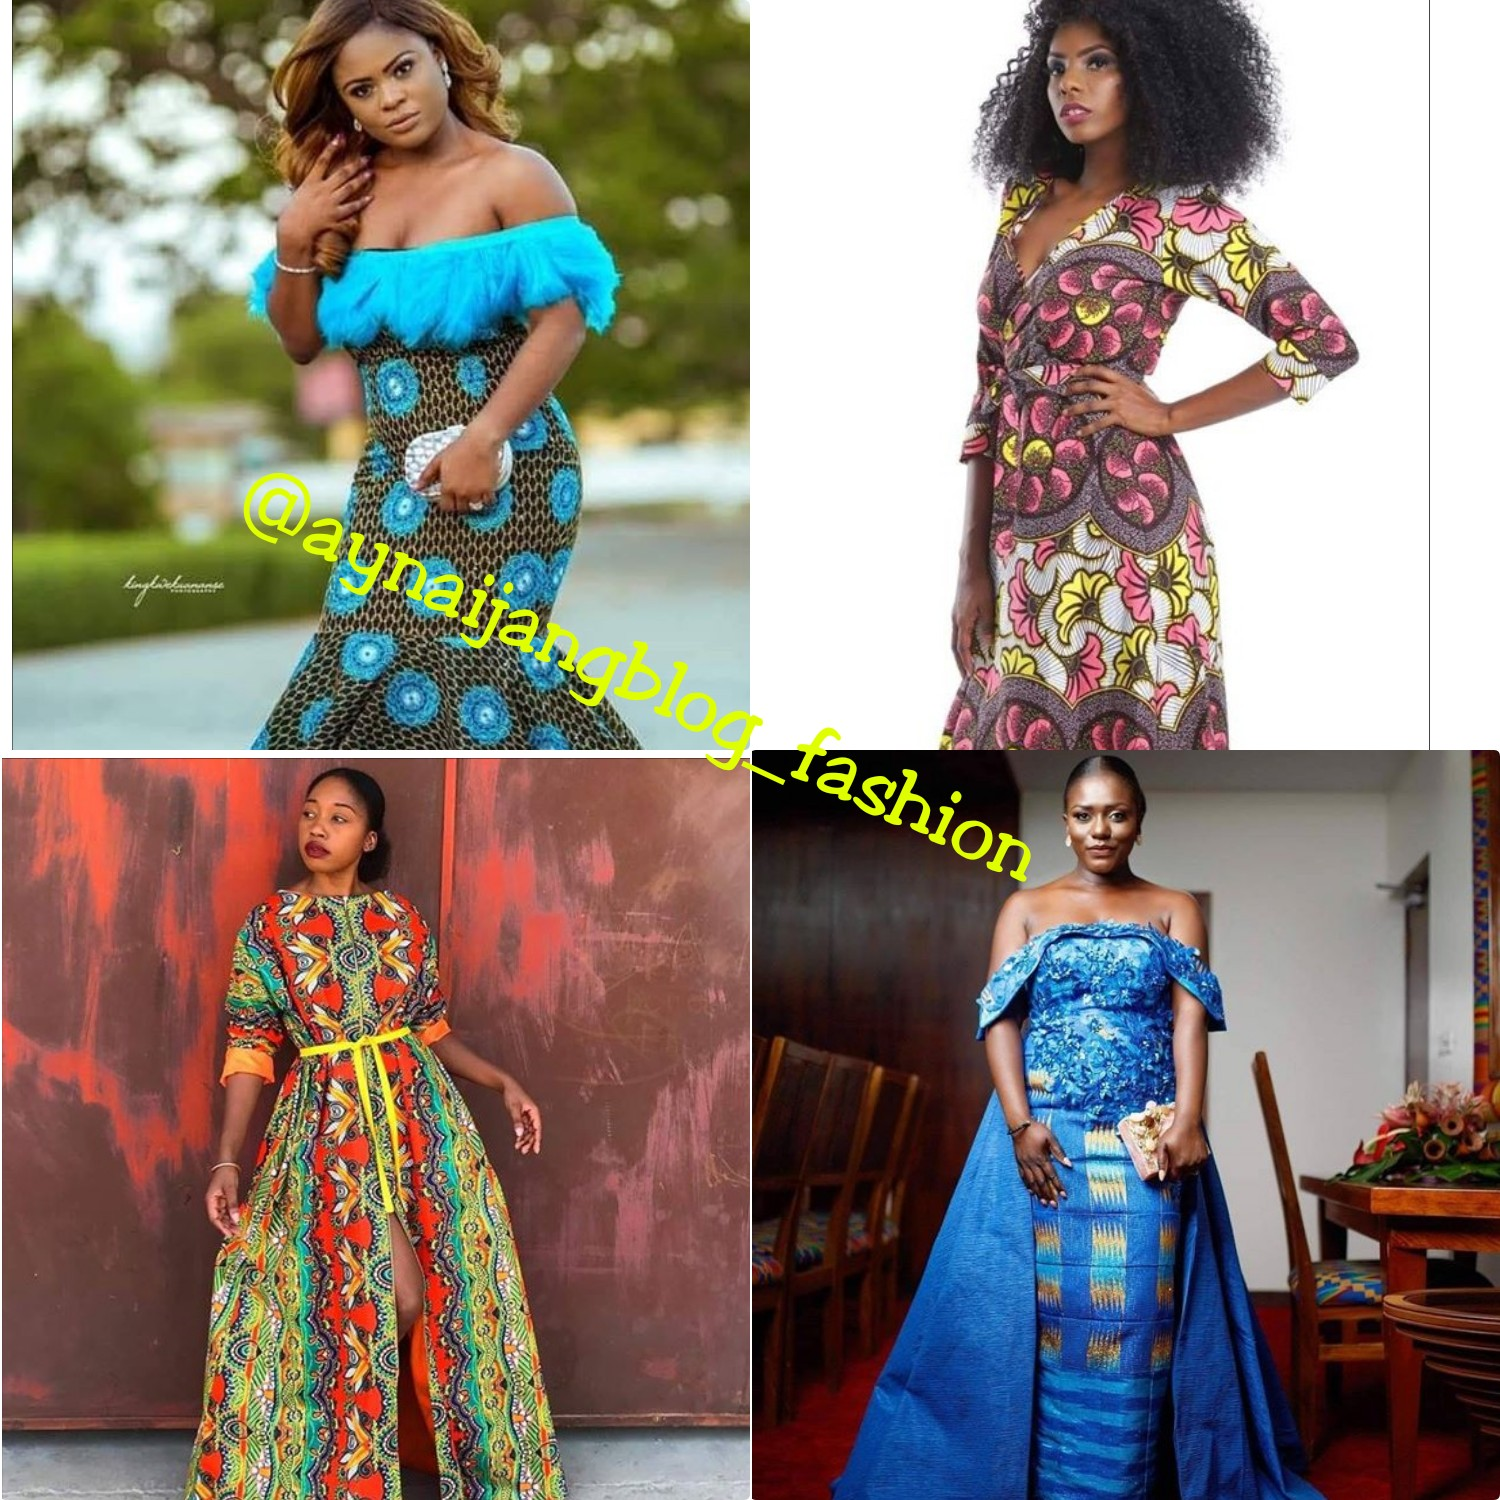 88fd83a0c60c the best style for your diverse occasions. 2018 latest native africa style  for women is the best that ...